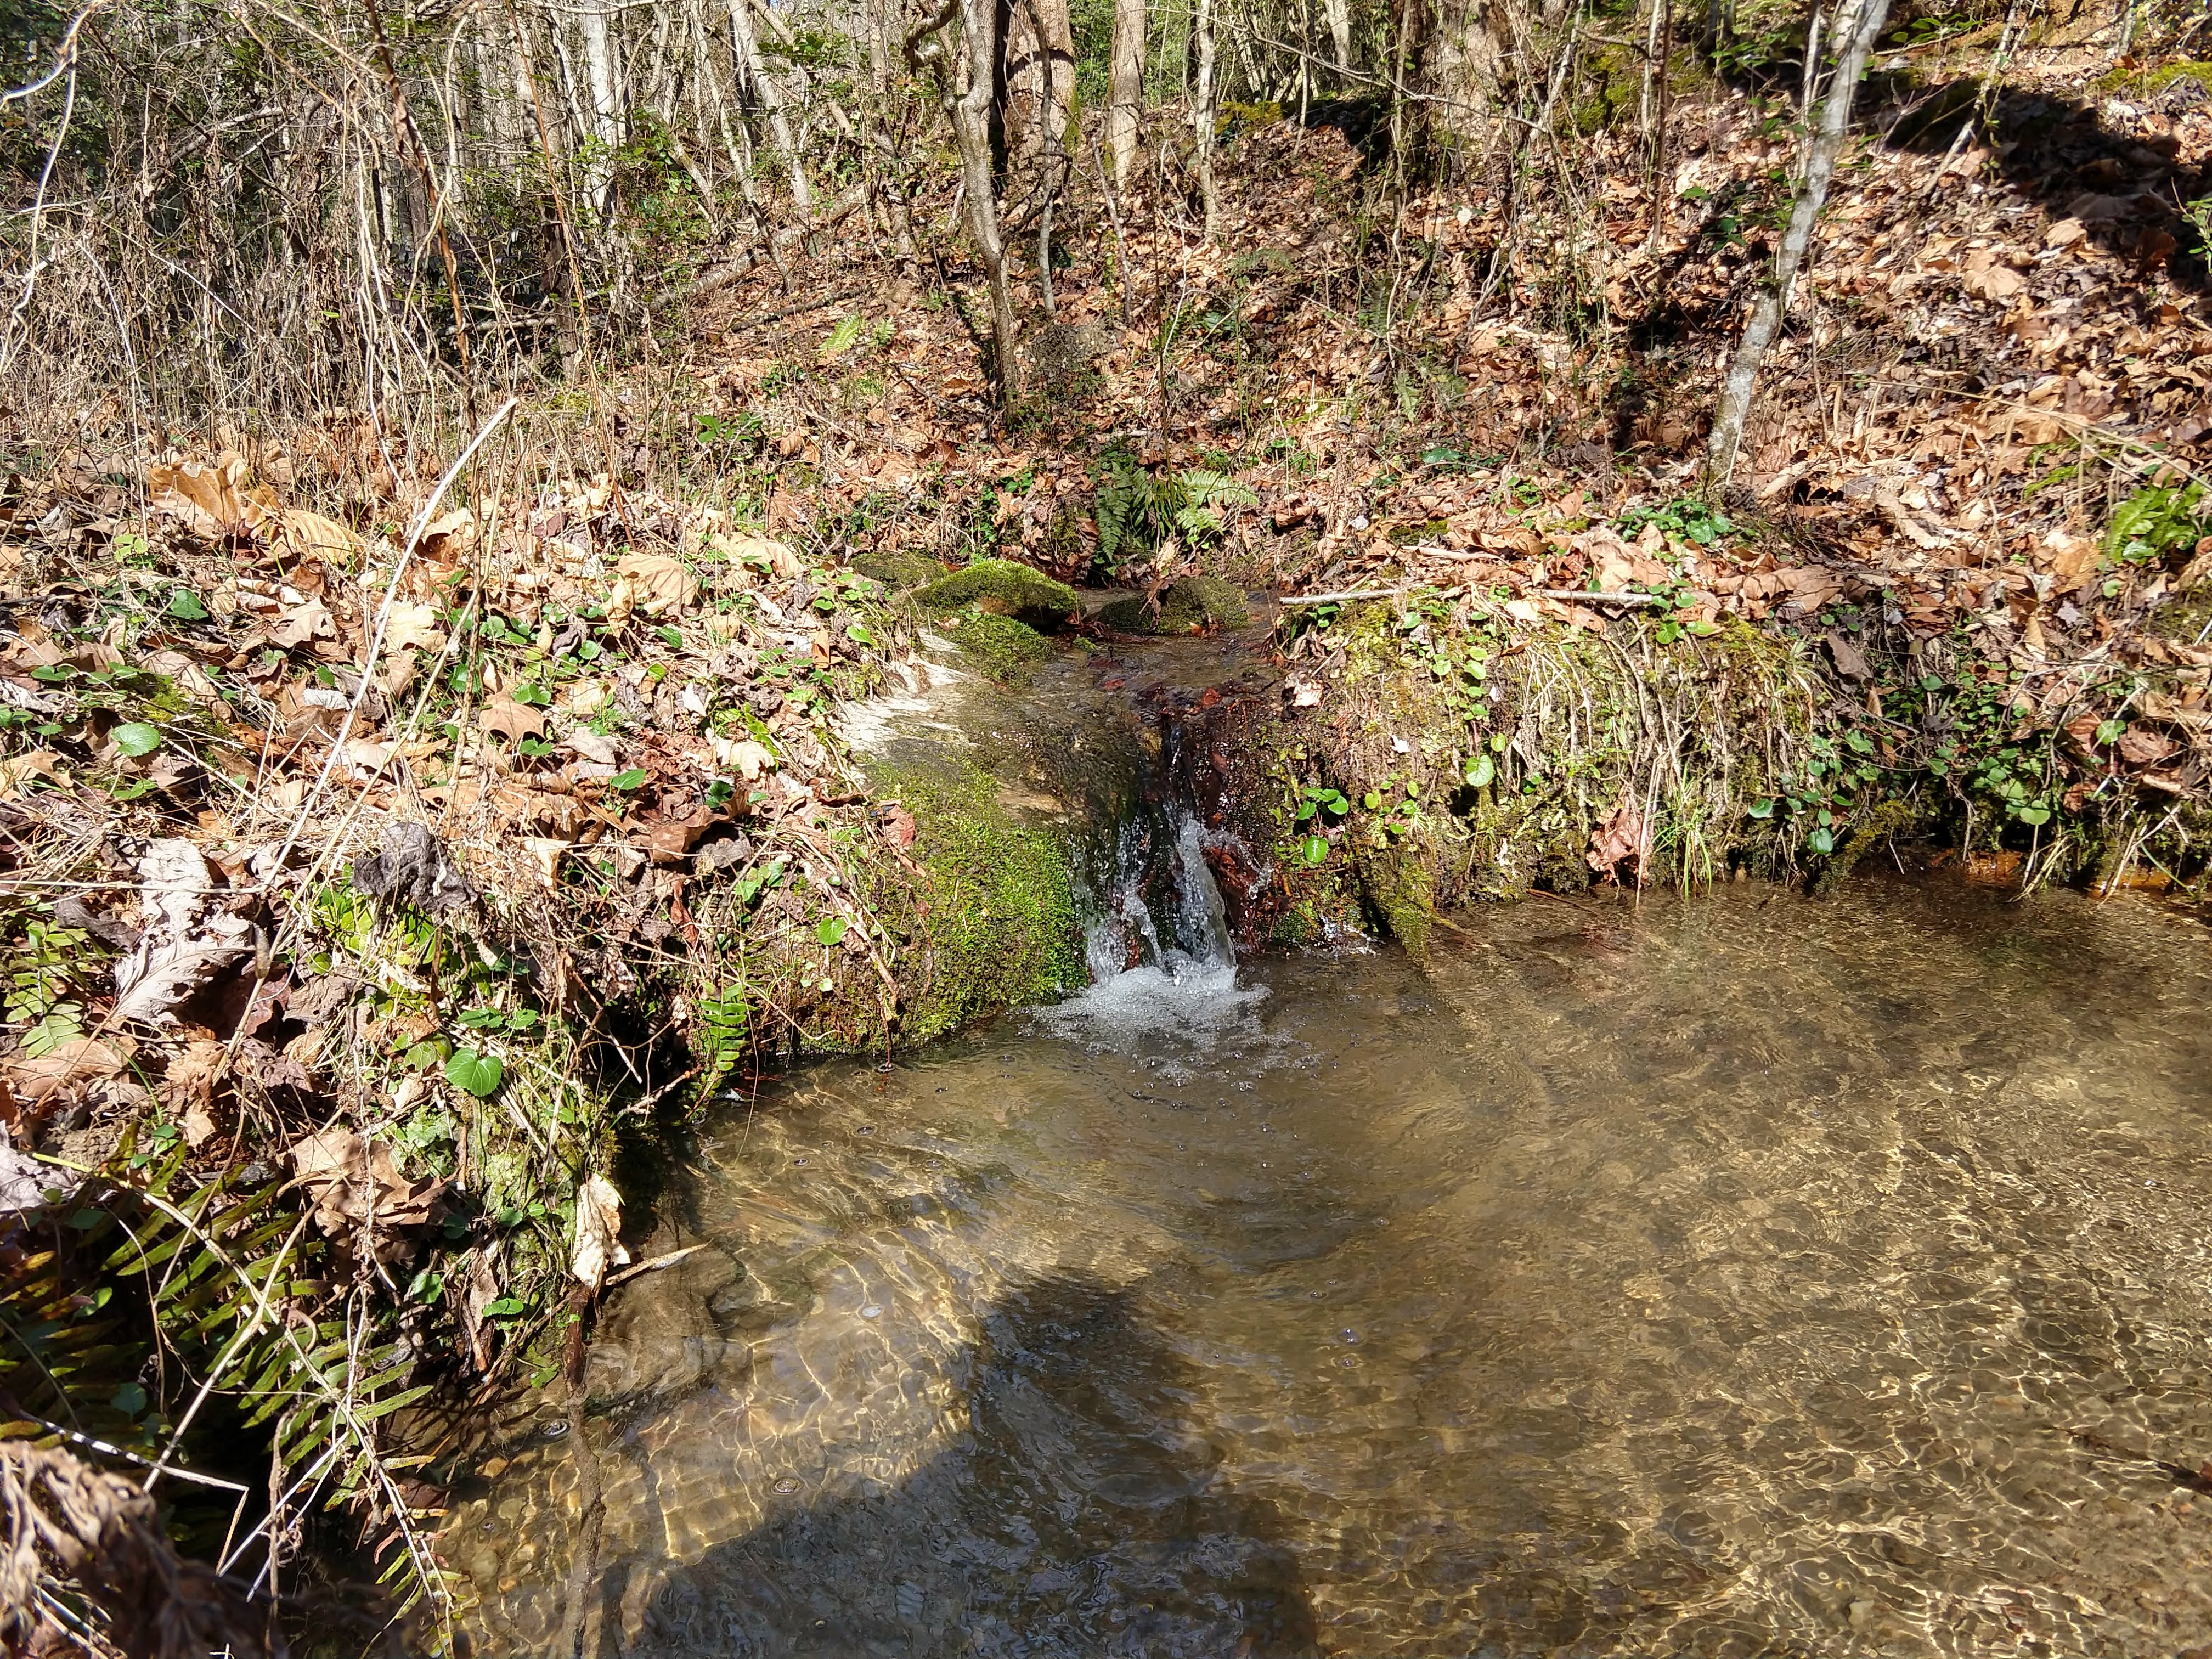 Photo of a small creek with a little waterfall into a pool